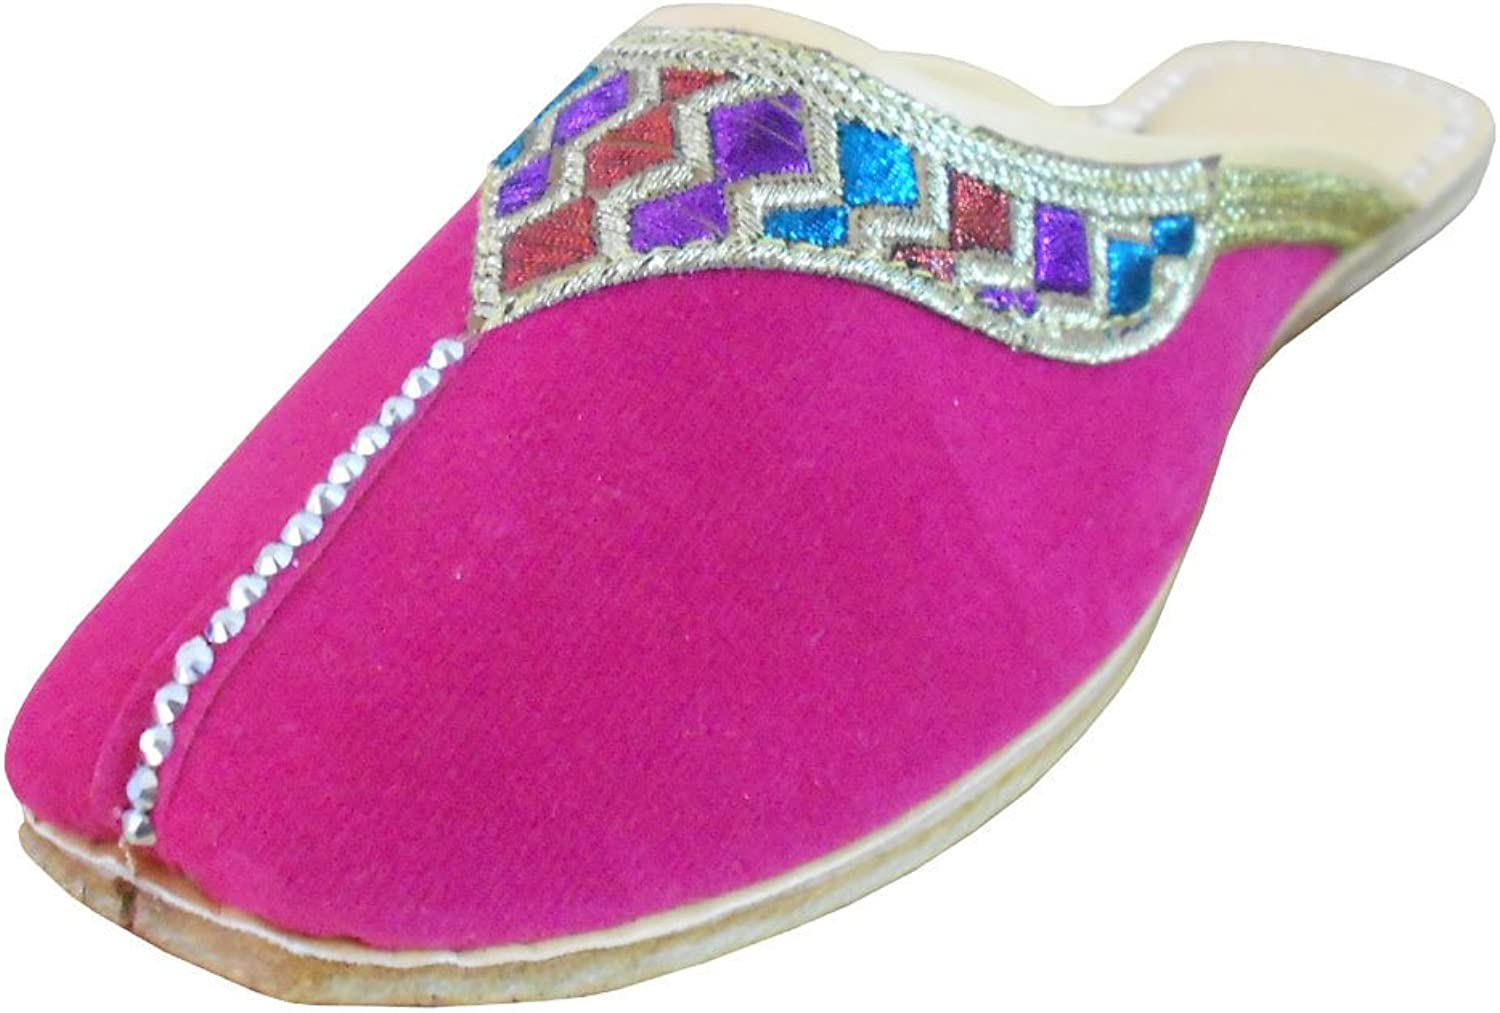 Kalra Creations Women's Indian Traditional Velvet with Embroidery Ethnic Slipper shoes